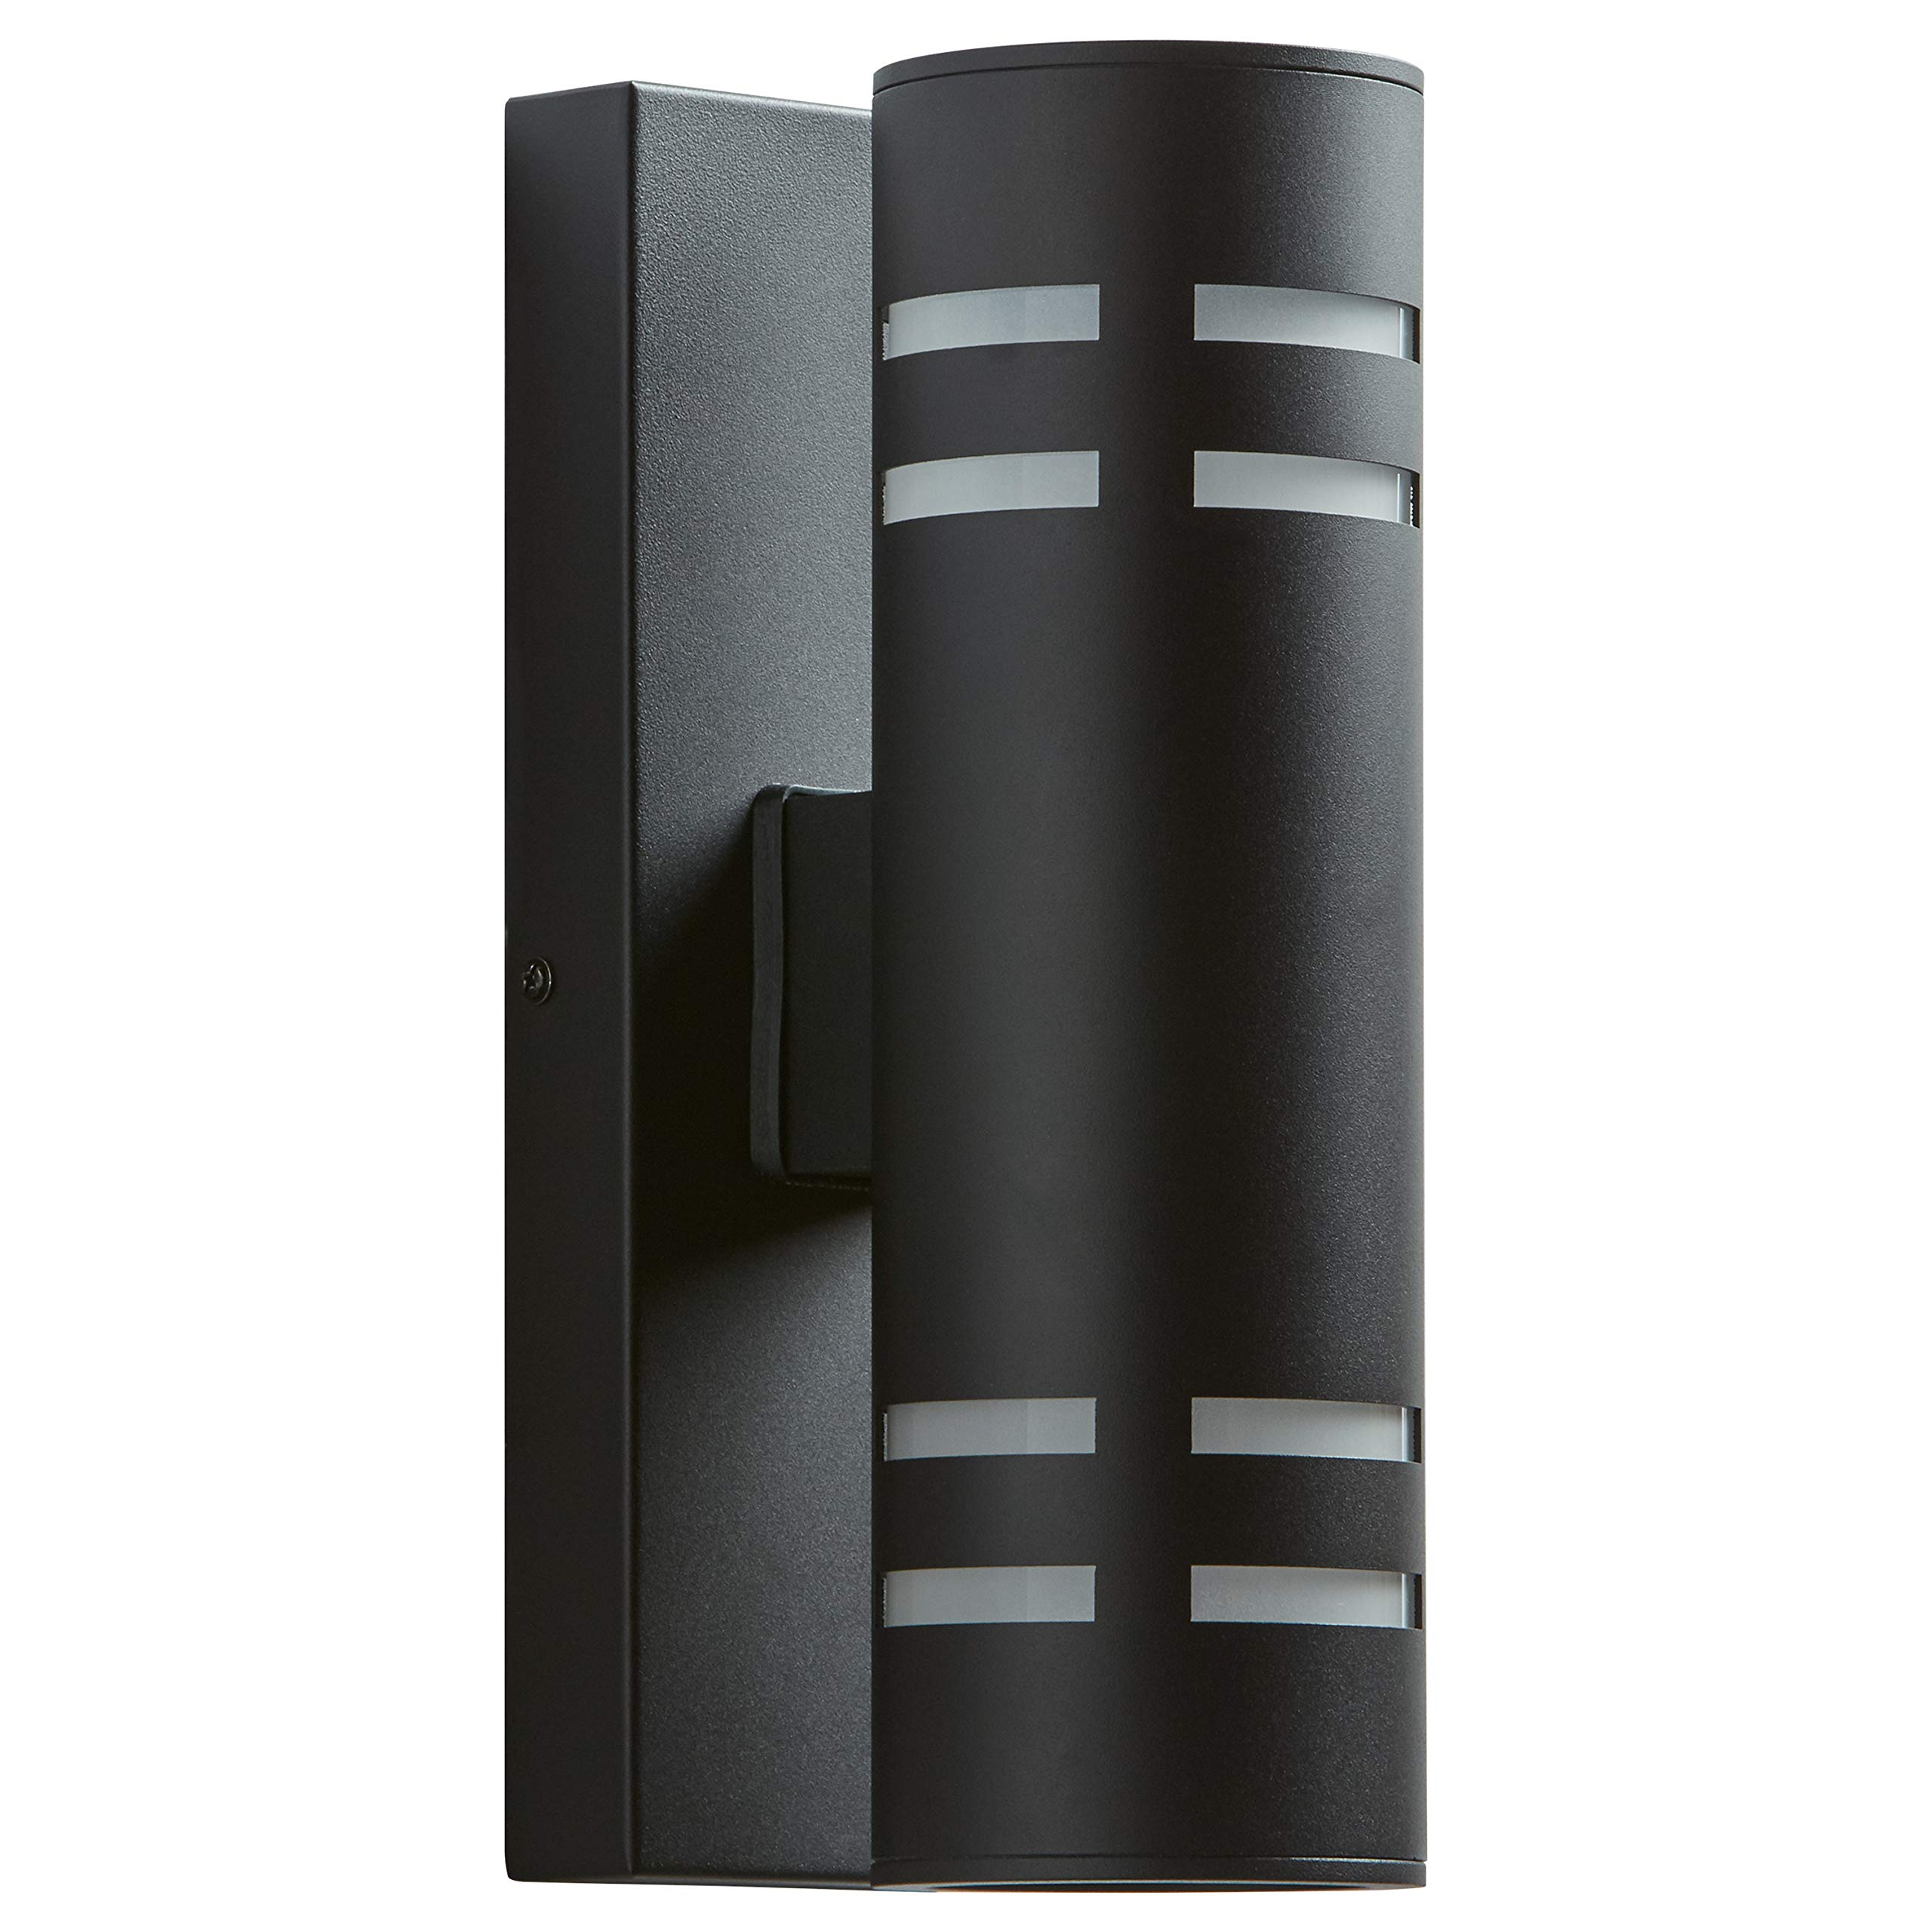 Amazon Brand – Rivet Contemporary Exterior Porch Cylinder Wall Sconce Fixture with Light Bulb - 4.25 x 6.5 x 13 Inches, Black